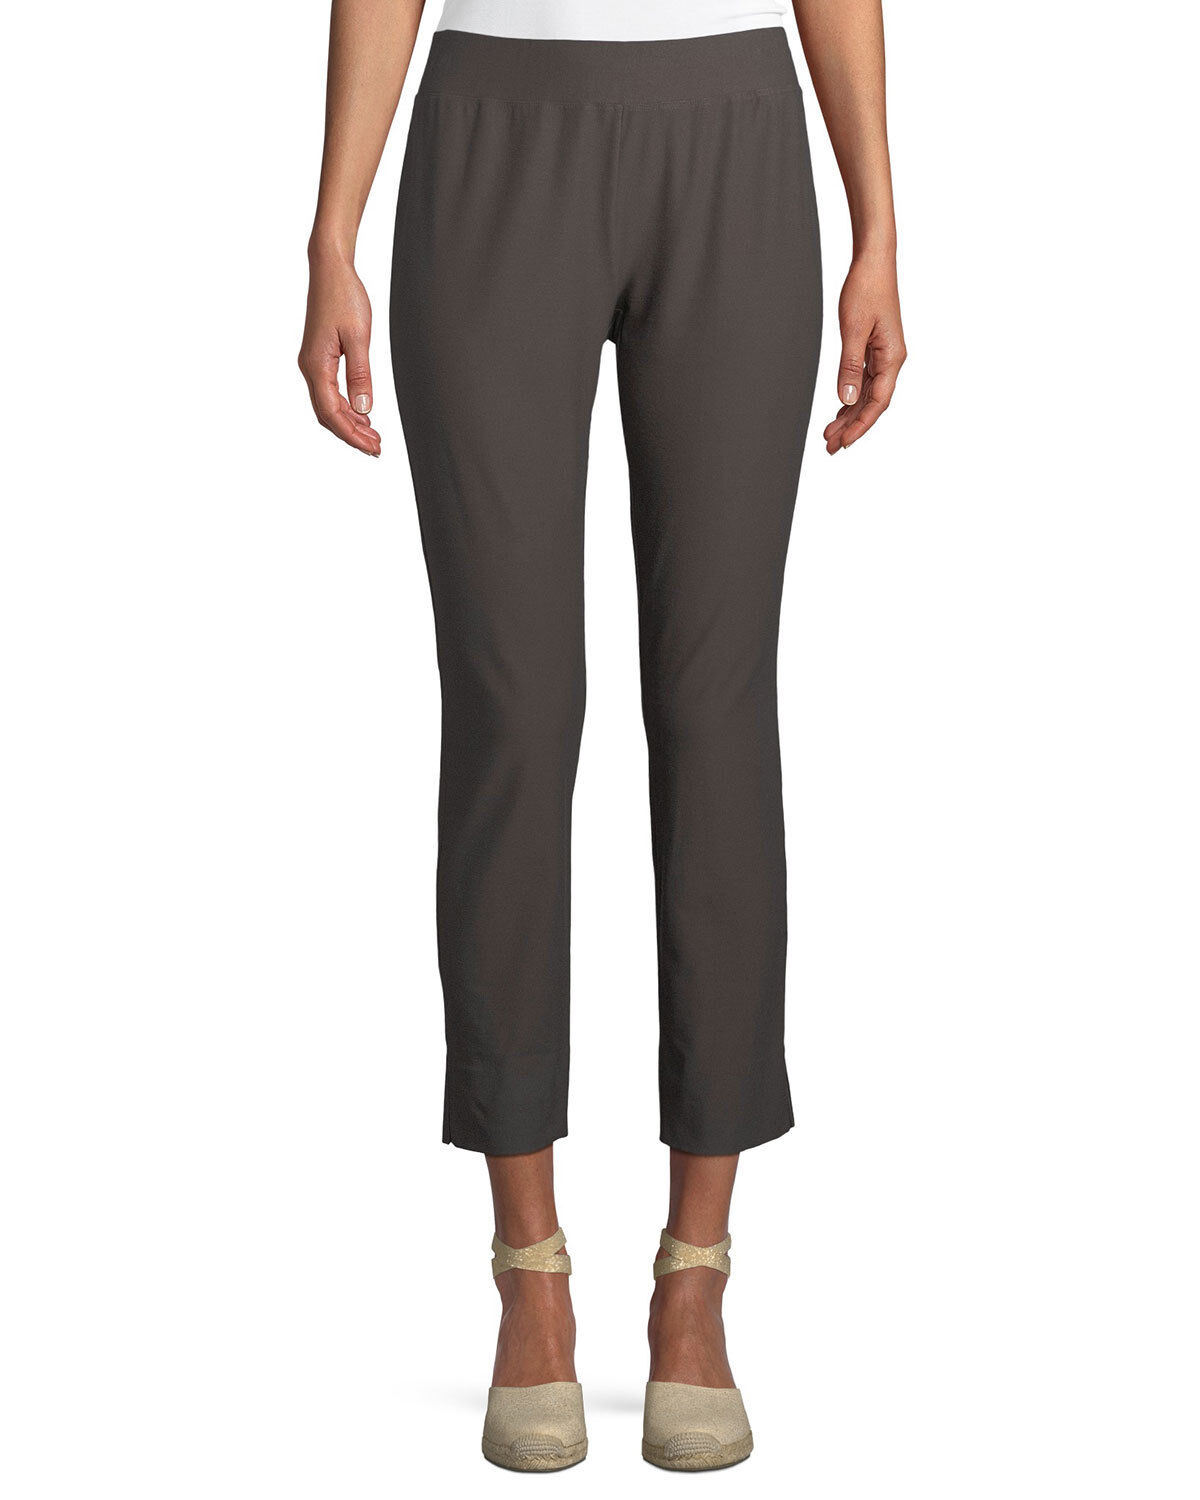 NWT EILEEN FISHER RYE Washable Stretch Crepe Slim Ankle Pants  168 S L XL